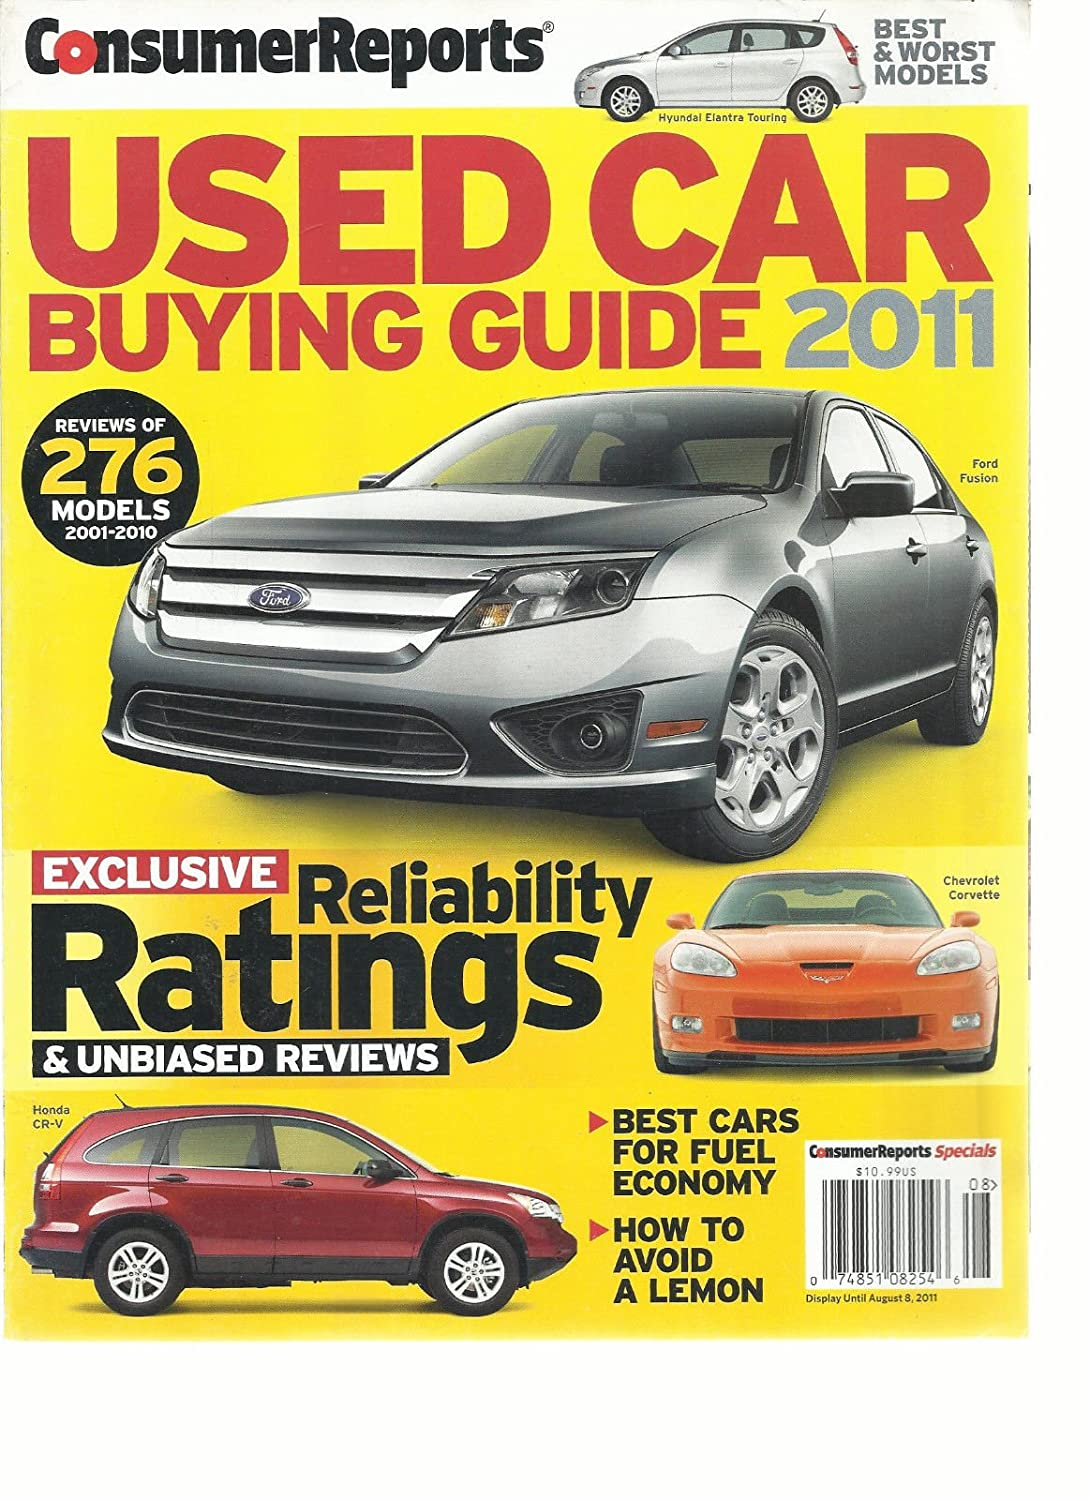 Amazon.com: CONSUMER REPORTS MAGAZINE, USED CAR BUYING GUIDE, 2011 BEST &  WORST MODELS: Everything Else